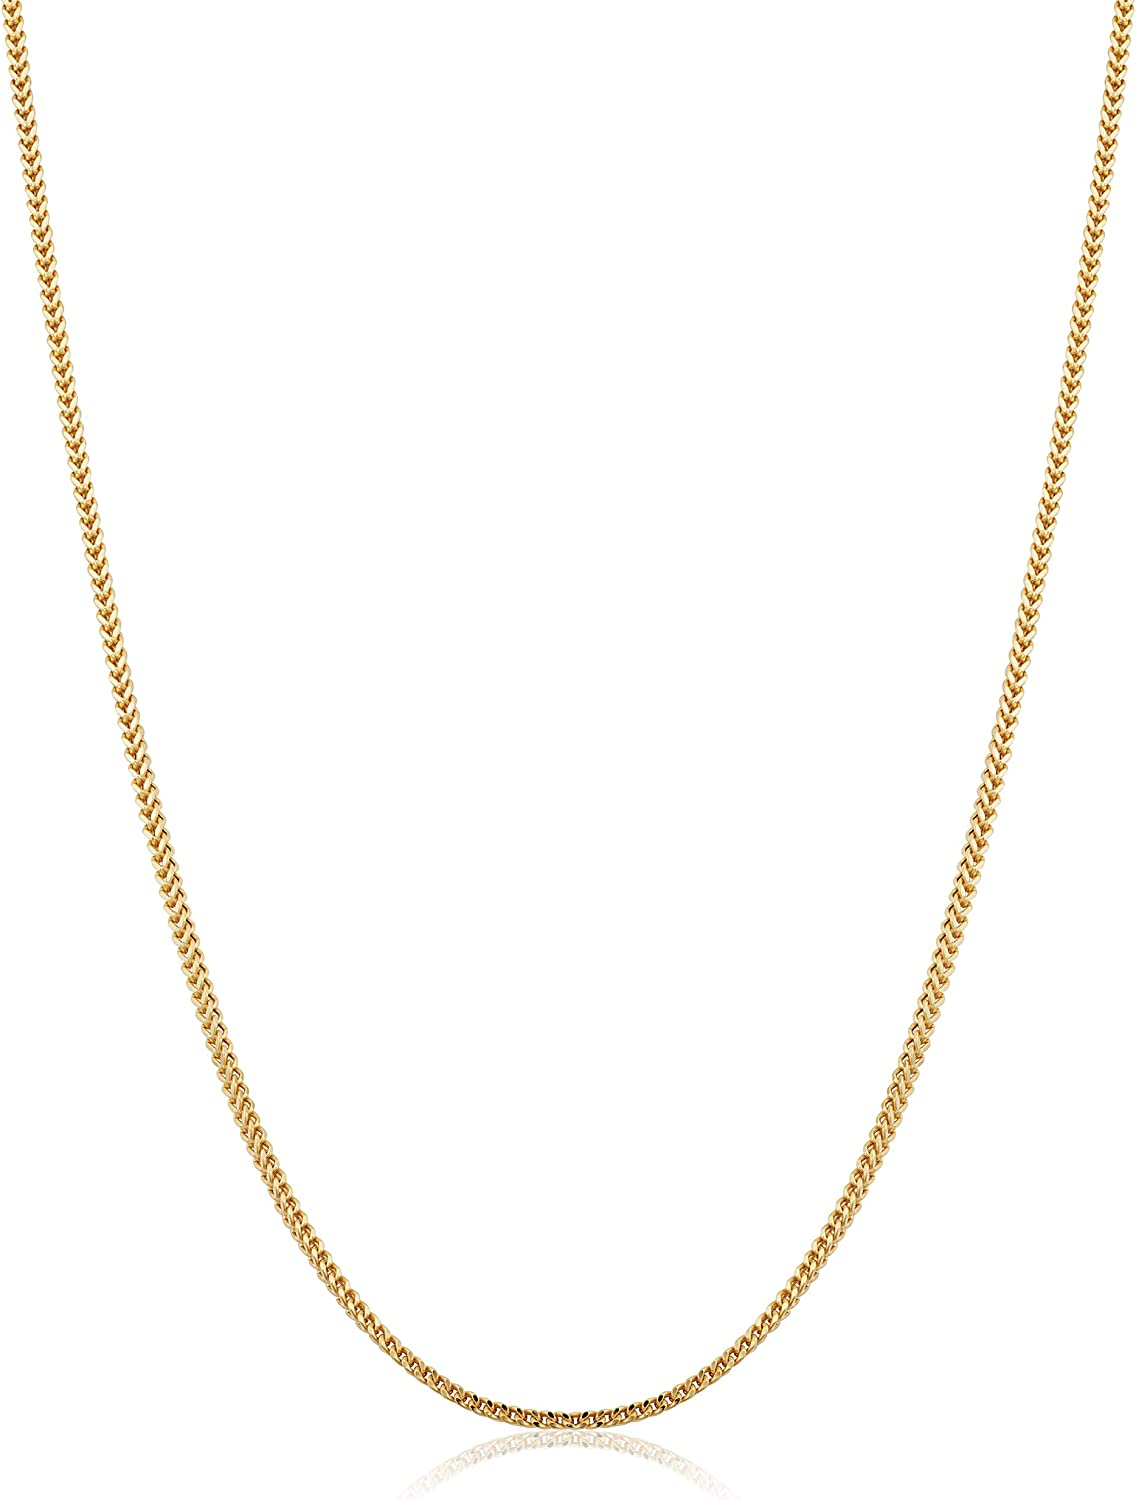 14k Yellow Gold 1.5 mm Franco and Women Latest item Max 44% OFF for Necklace Men Chain